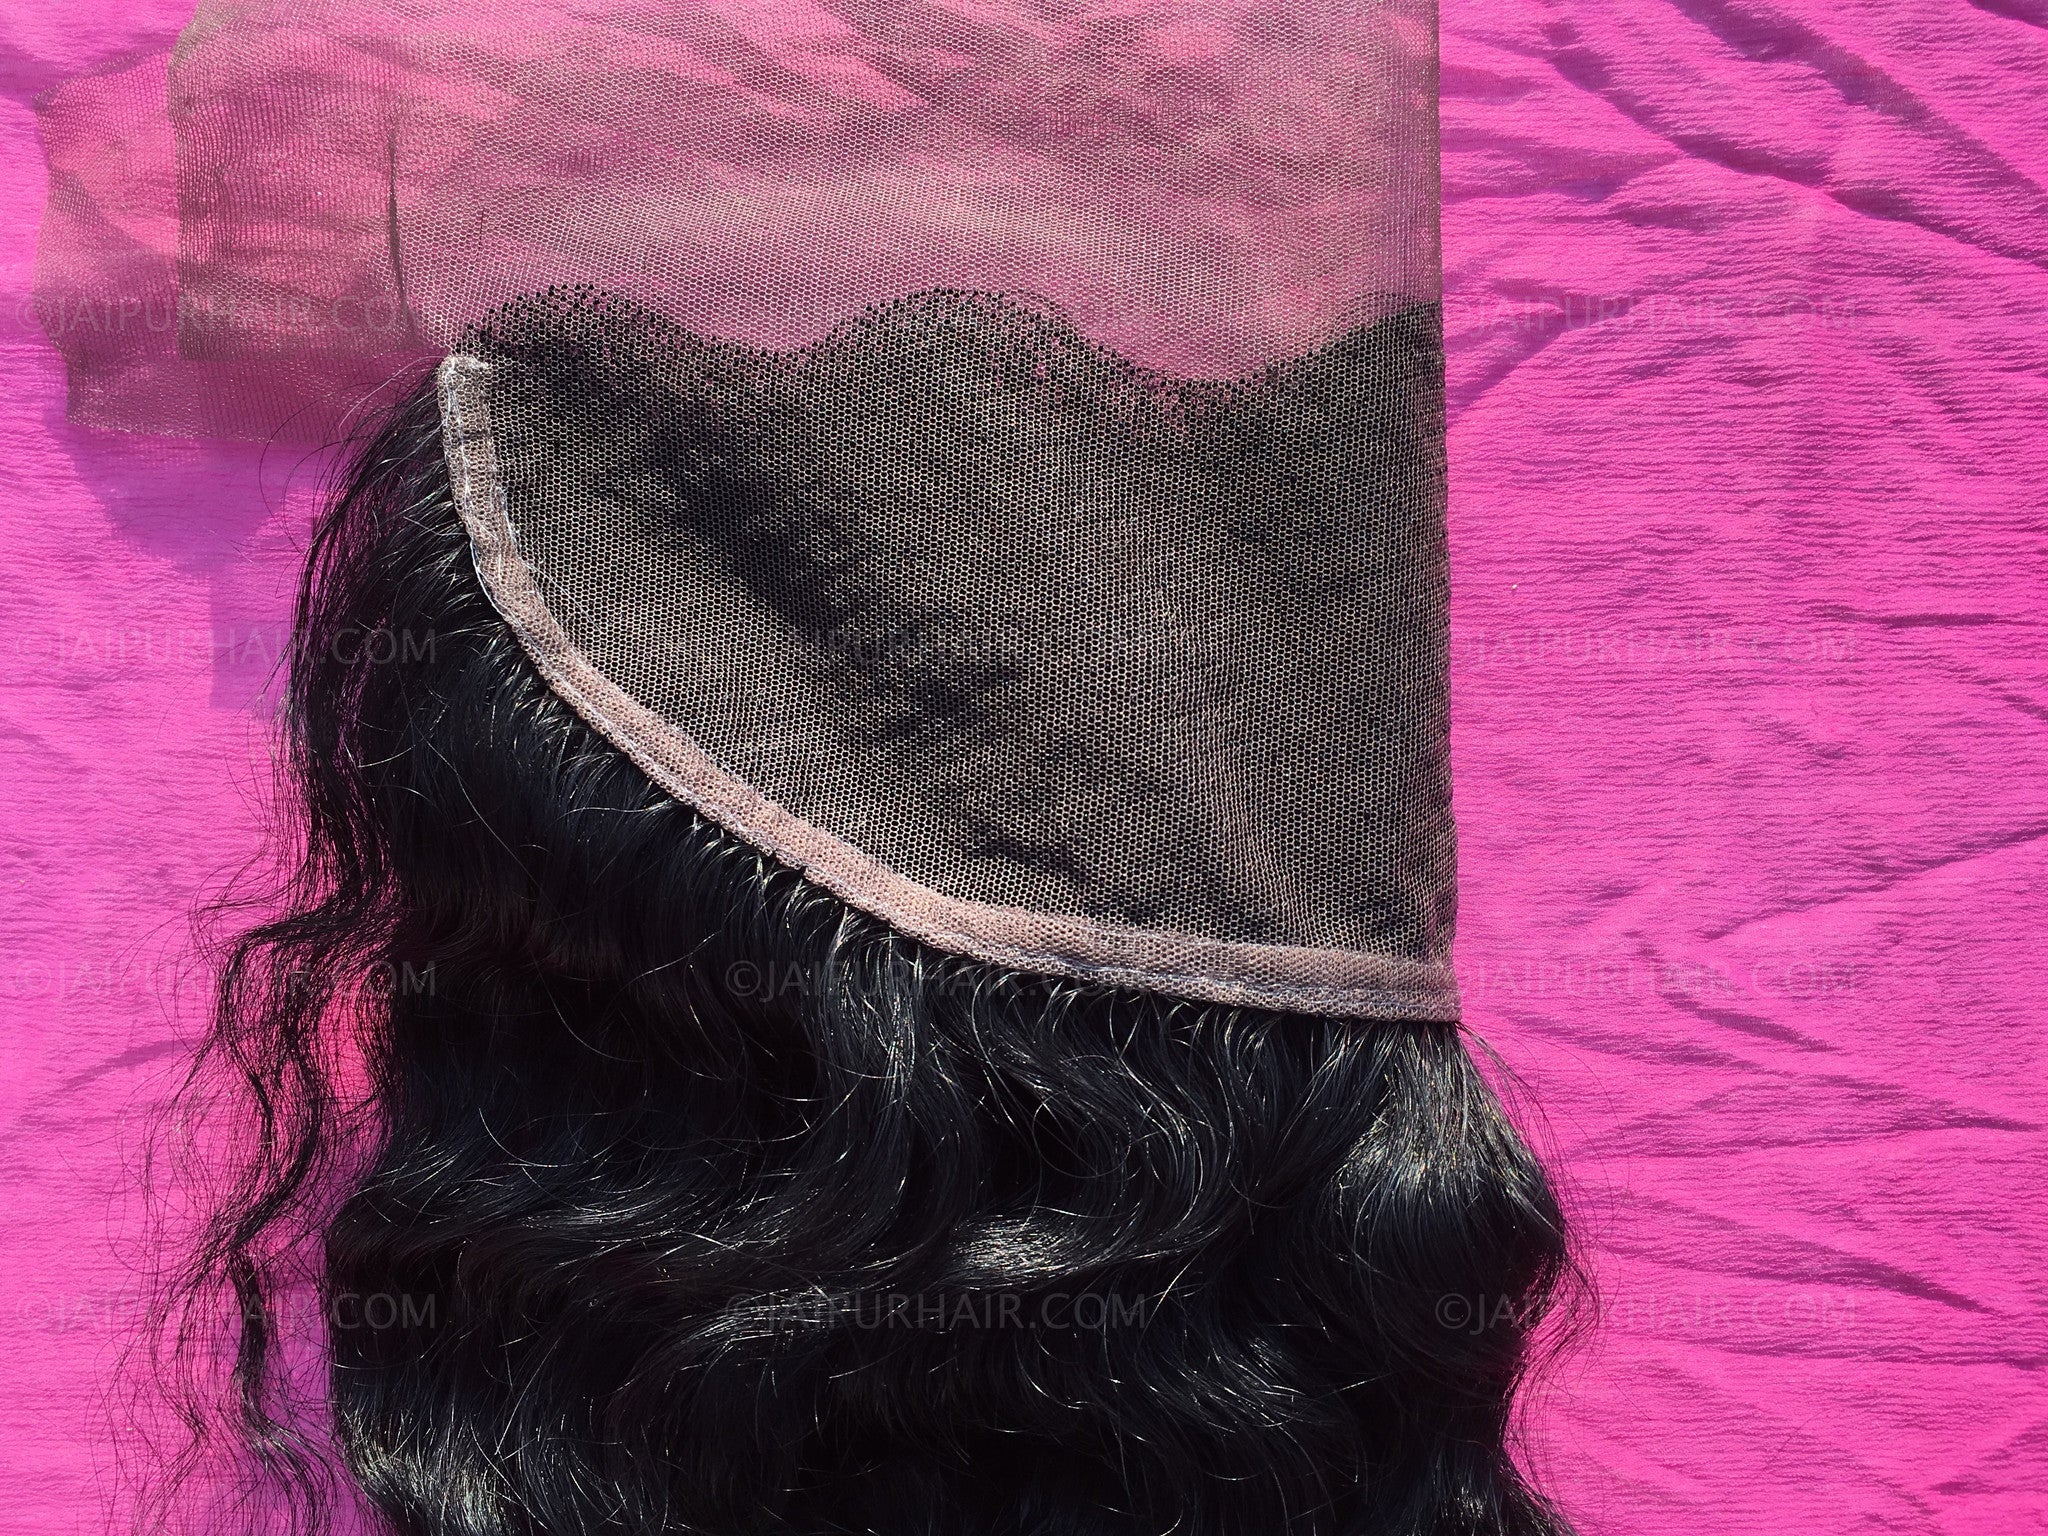 raw indian temple hair wholesale | indian temple hair vendors | Indian temple hair suppliers |